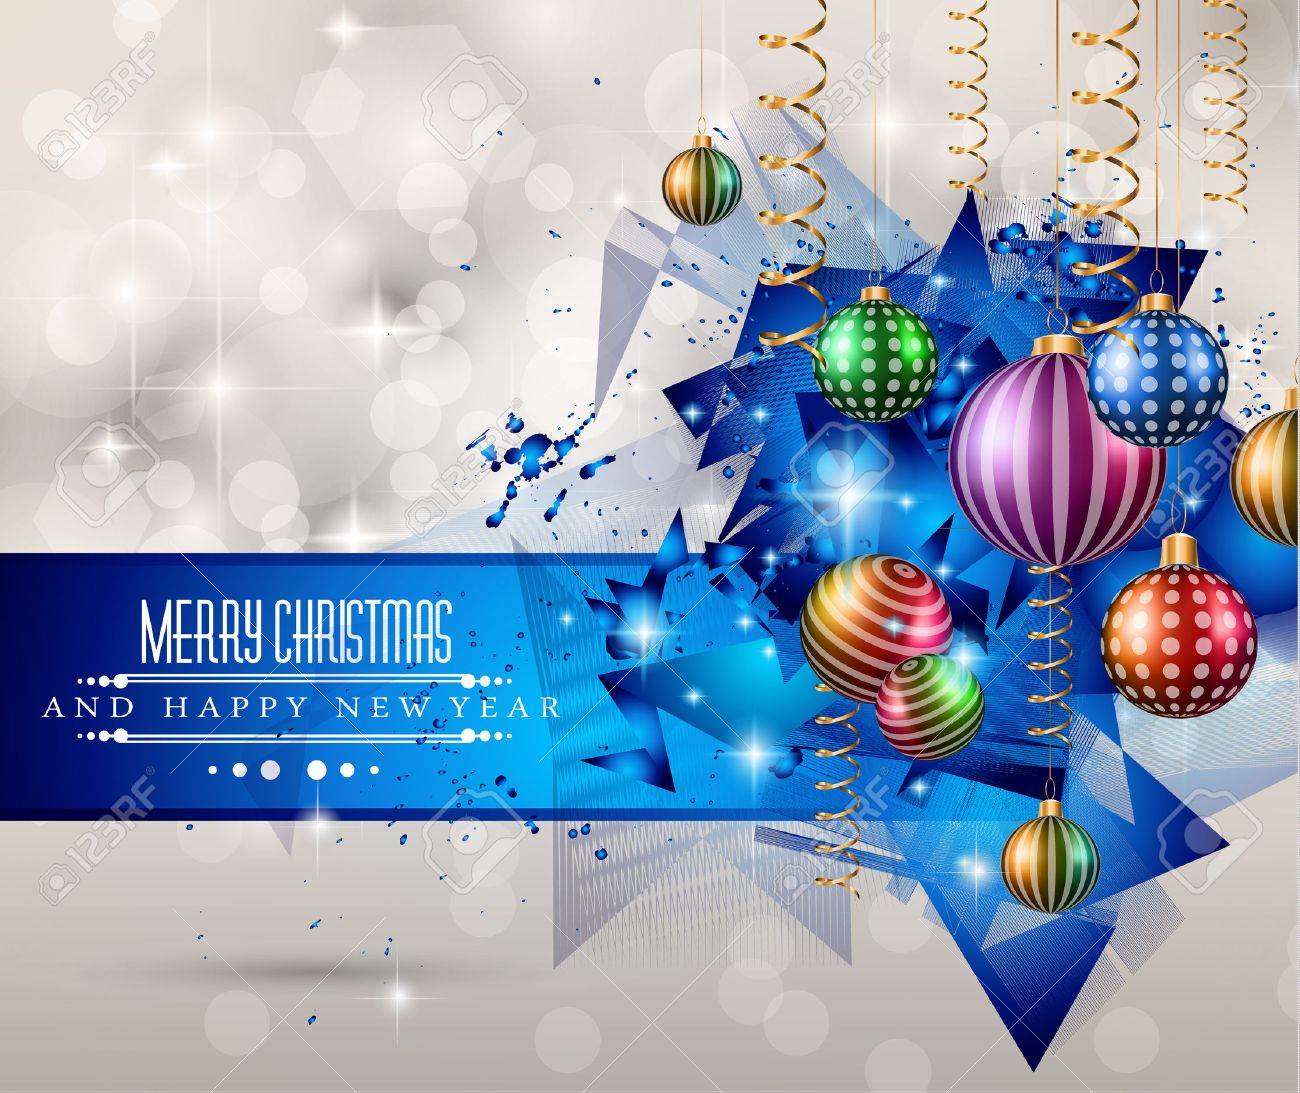 Merry christmas greeting card for happy holidays and new year merry christmas greeting card for happy holidays and new year flyers stock vector 33429436 m4hsunfo